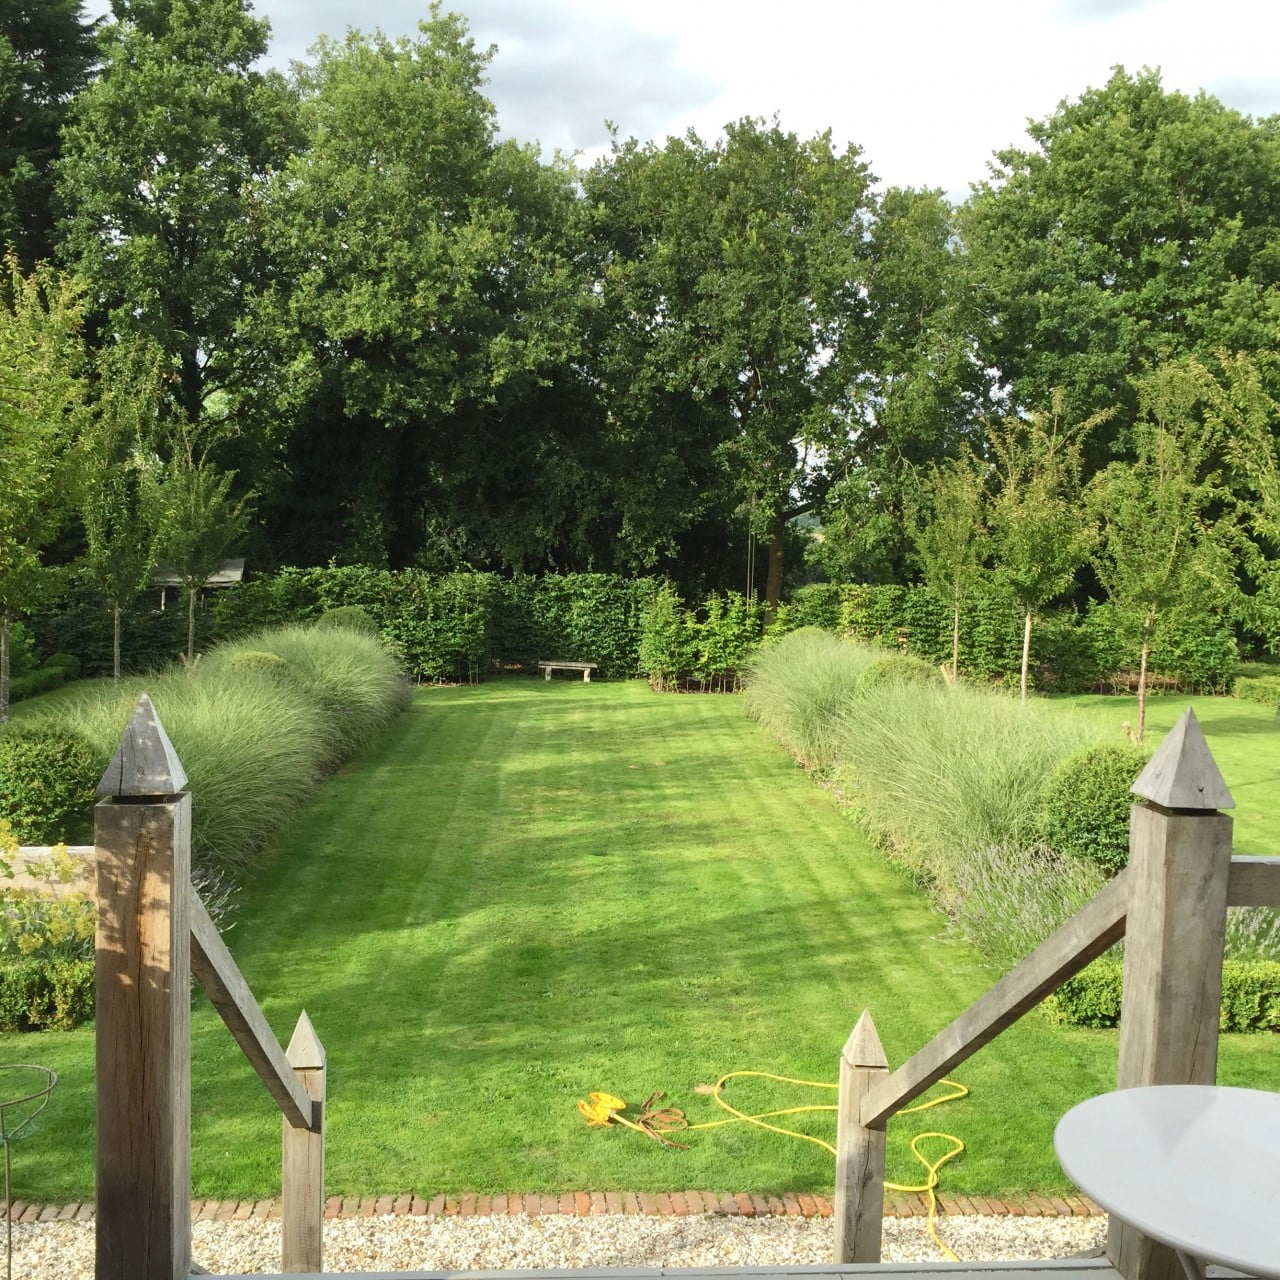 A view of our own garden here in newbury. It is a large formal garden with evergreen topiary & ornamental cherry trees